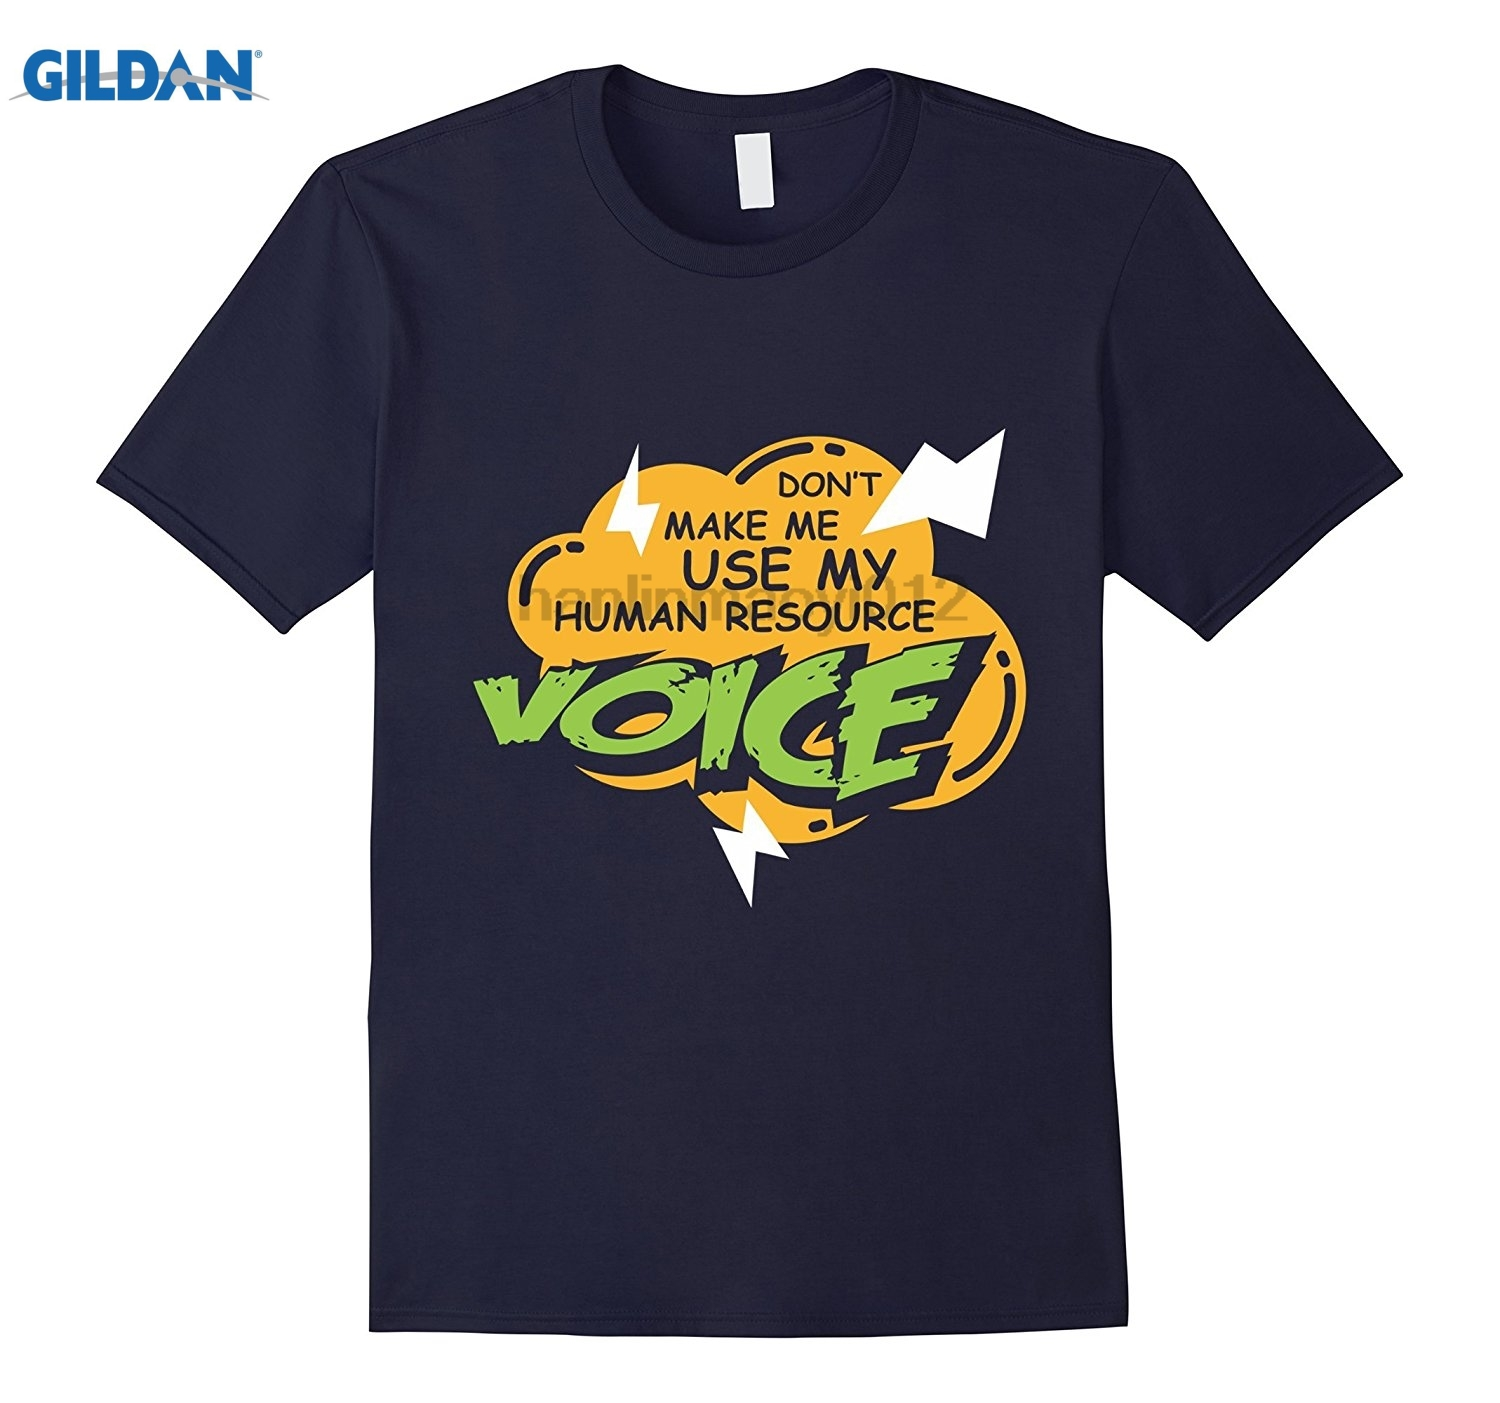 GILDAN Dont Make Me Use My Voice Human Resource Gift T-Shirt Womens T-shirt ...